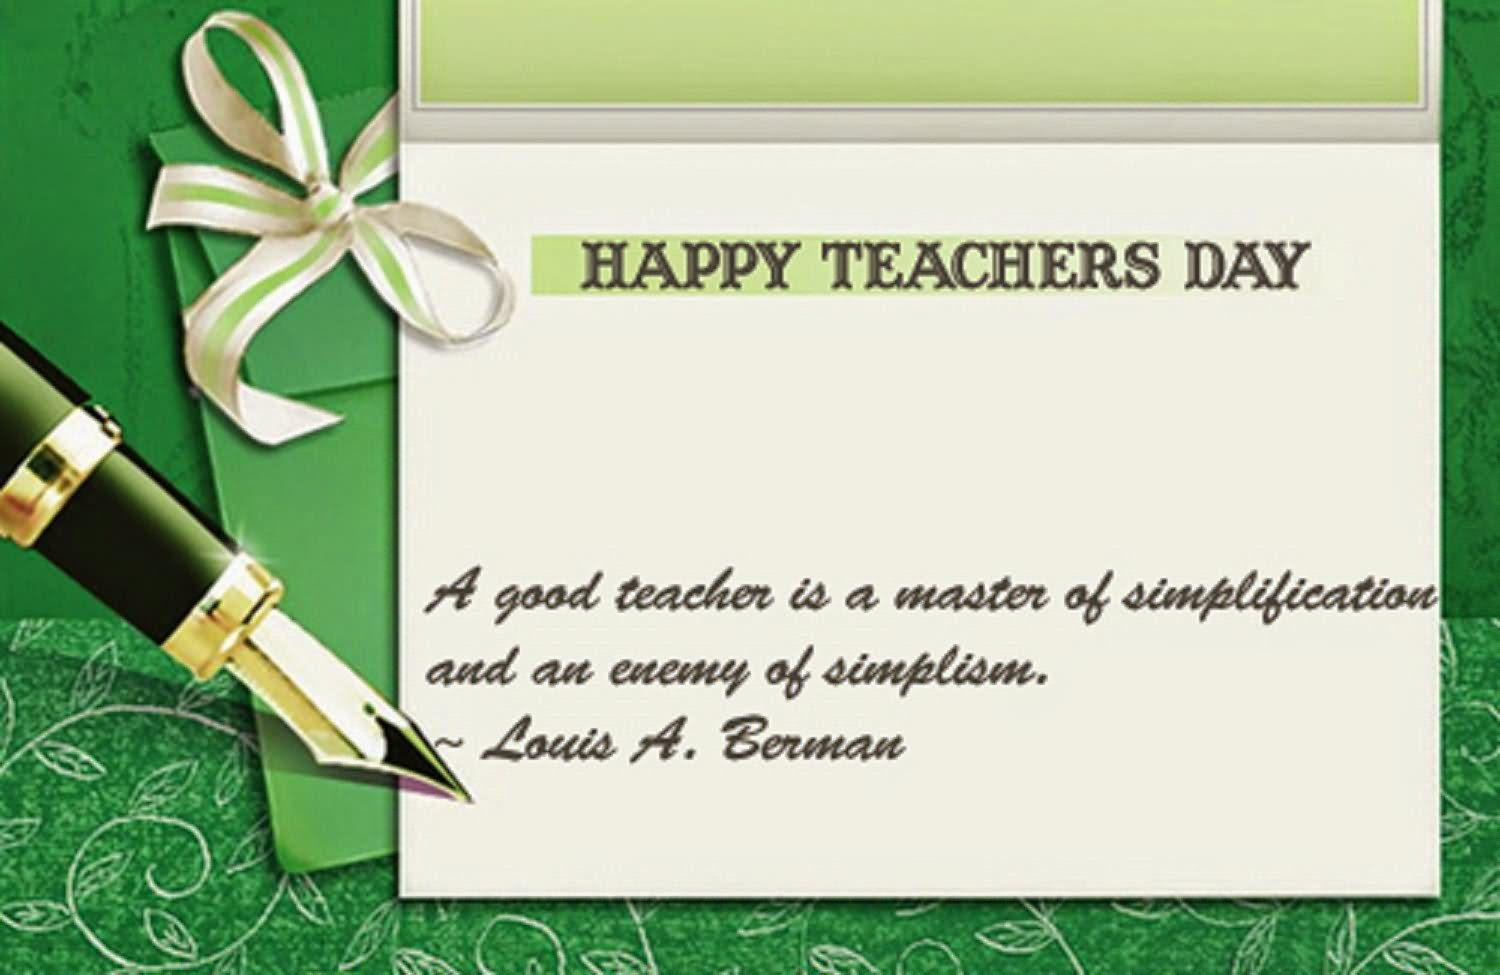 50 wonderful happy teachers day wish pictures and images happy teachers day a good teacher is a master of simplification and an enemy of simplism spiritdancerdesigns Images